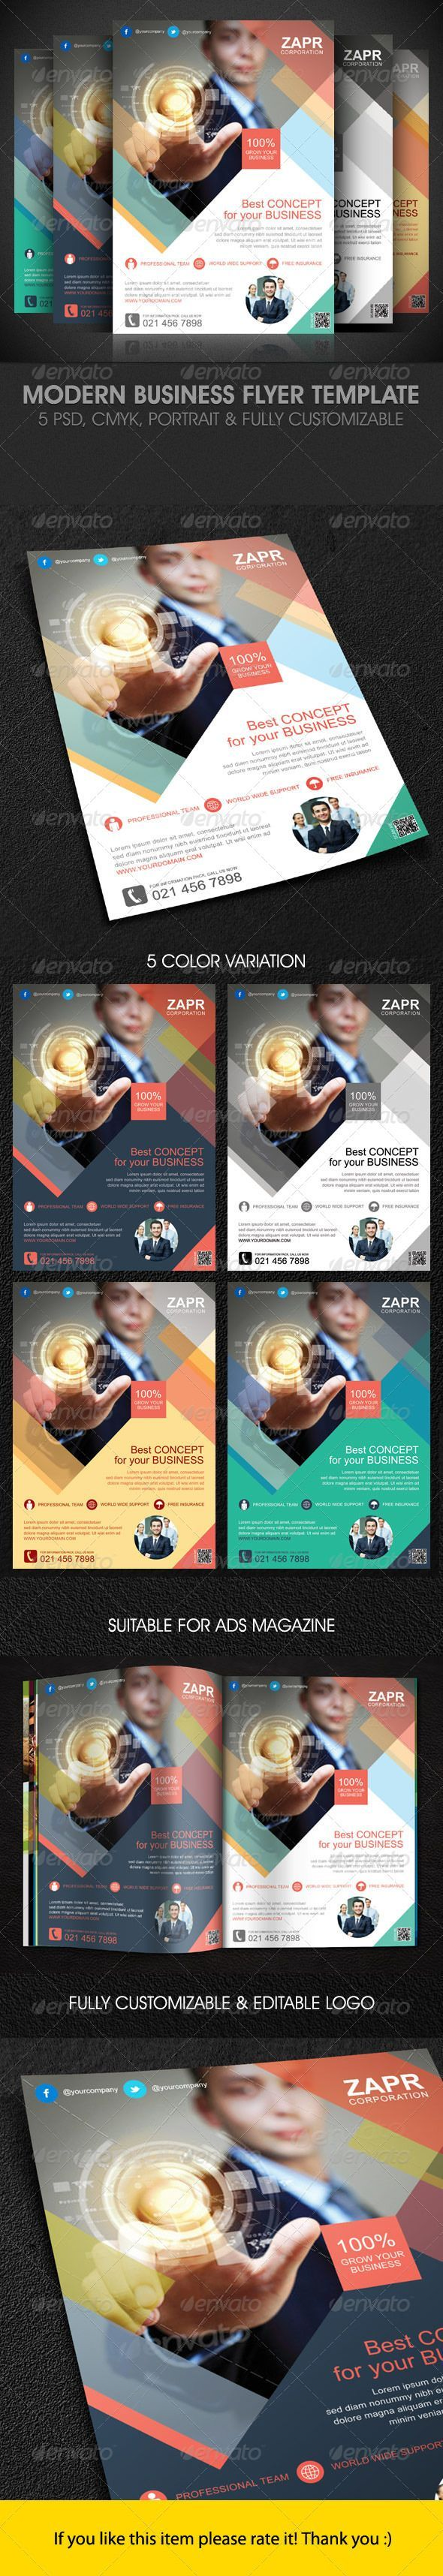 Modern Business Flyer Template - Corporate Flyers: